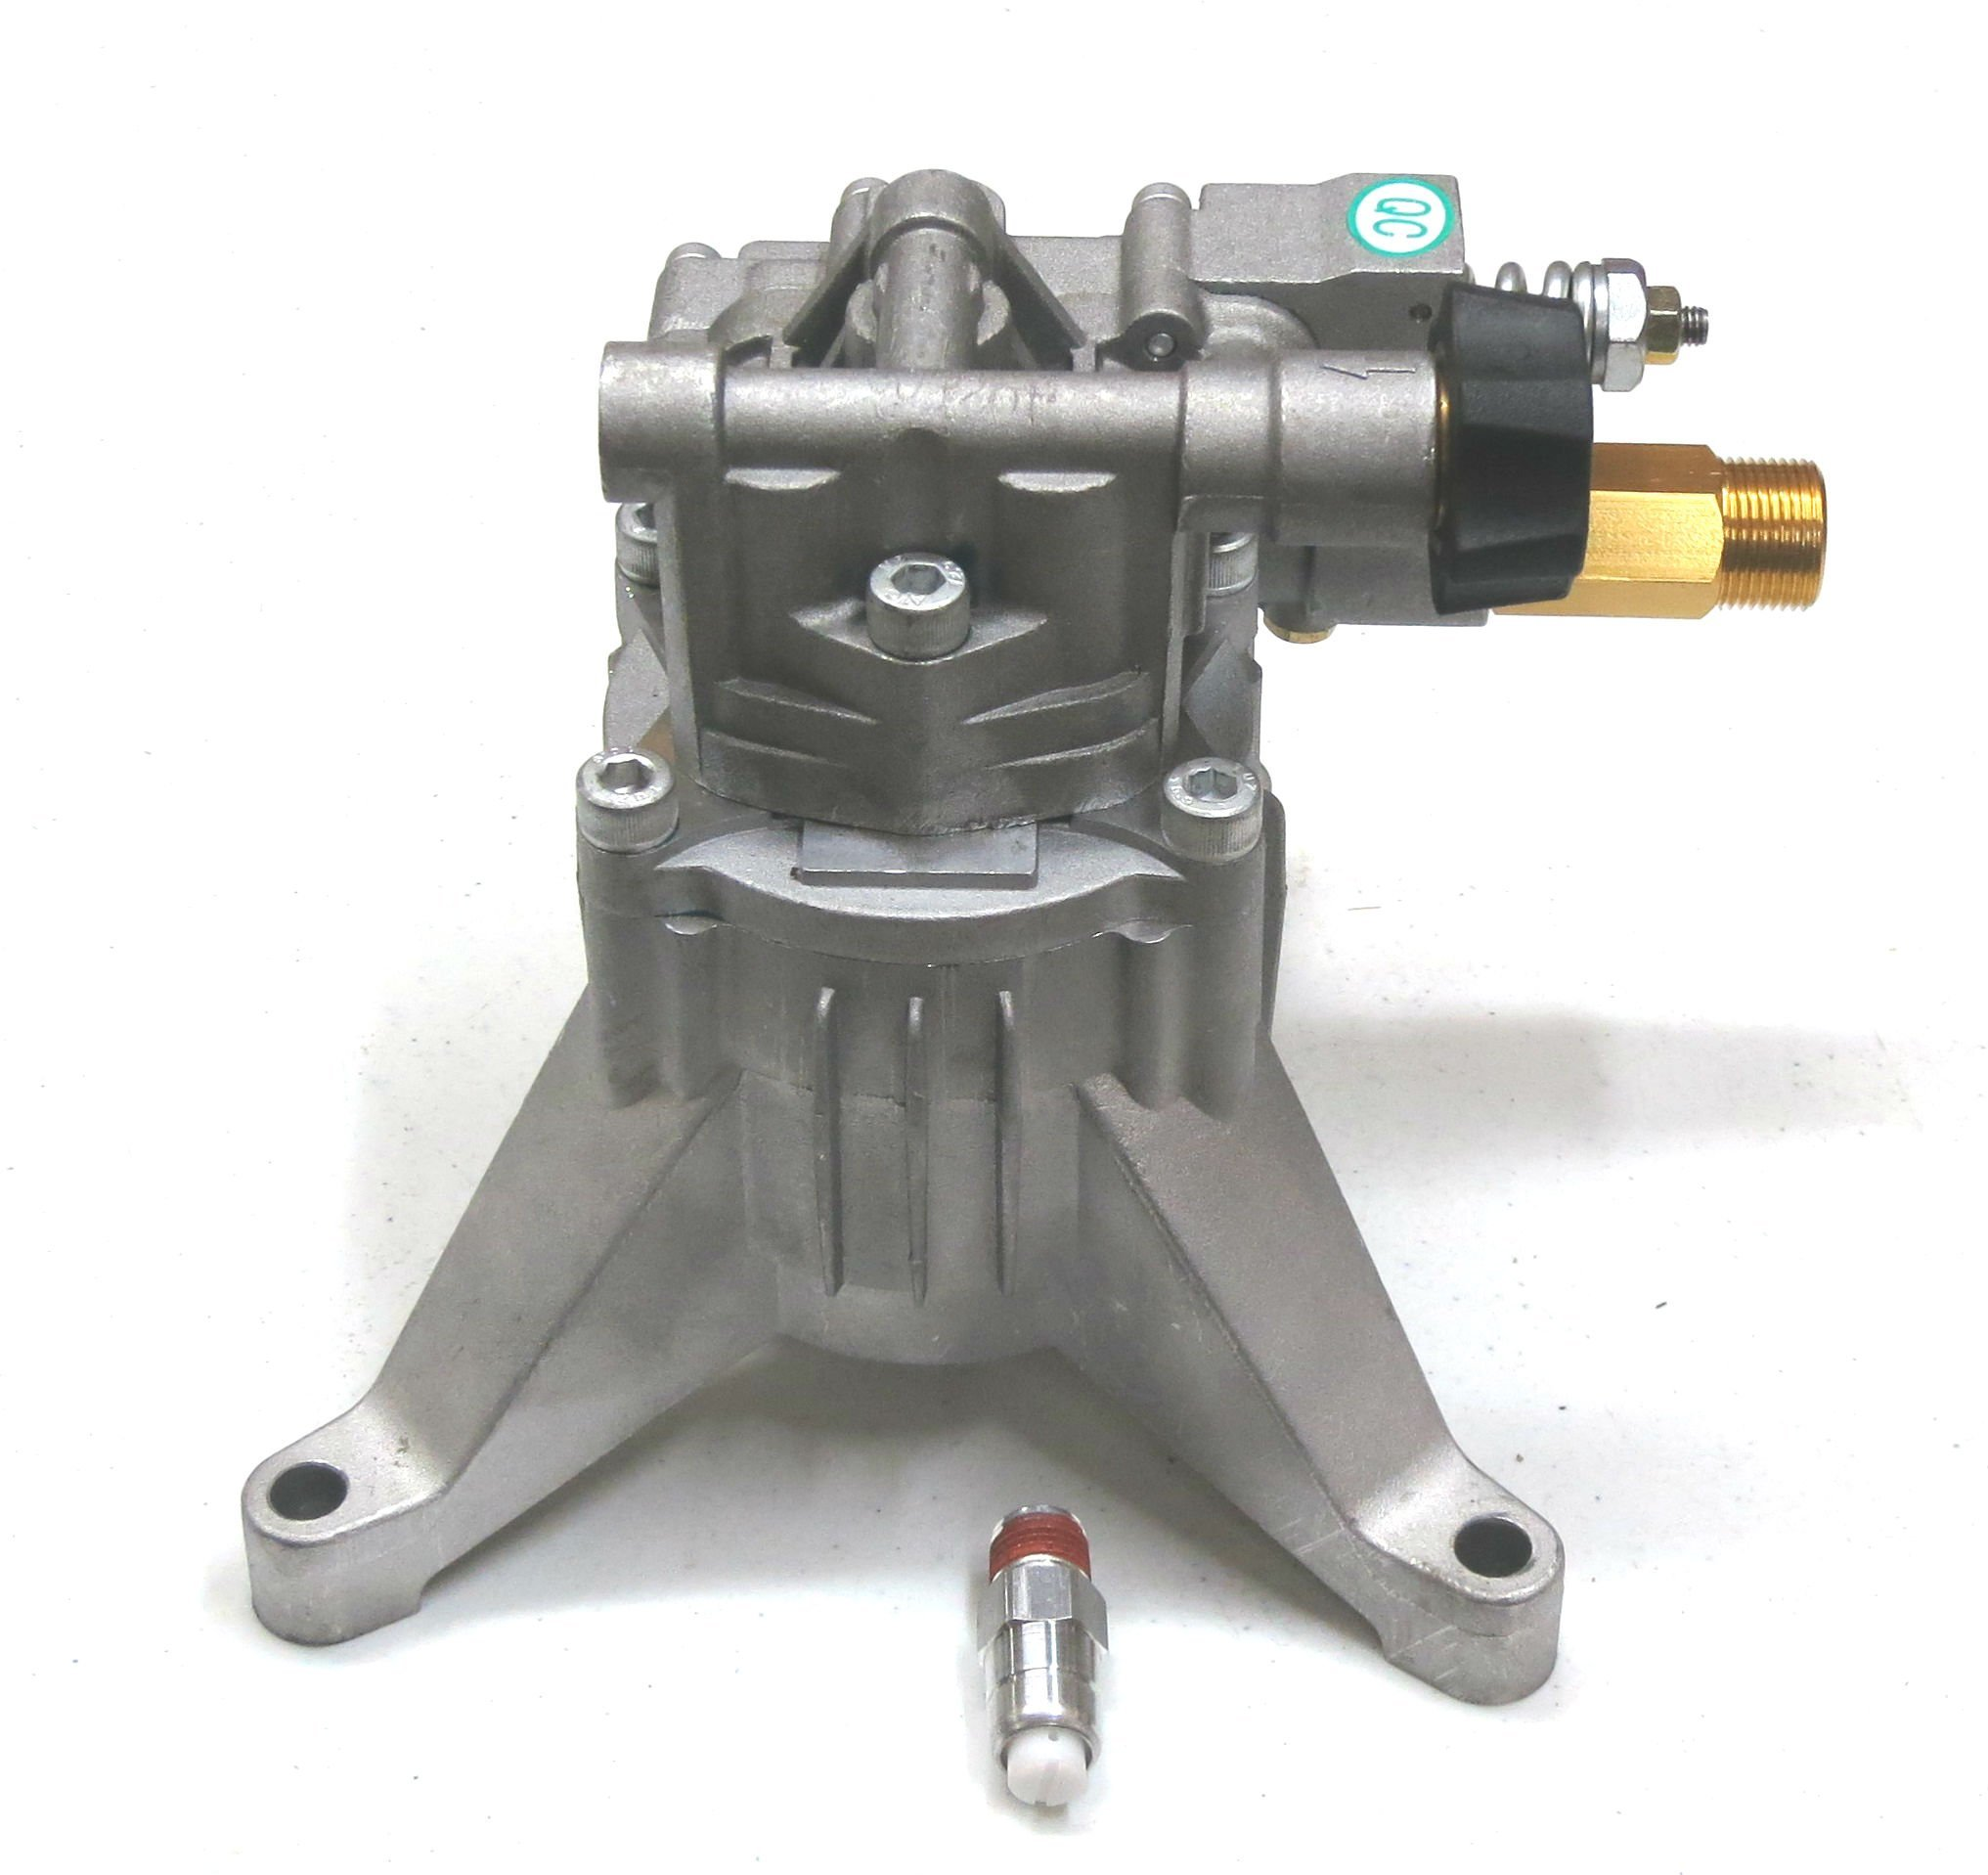 Homelite | Universal 2800 psi Power Pressure Washer Water Pump, 2.5 gpm, 308653052 fits many models by Homelite